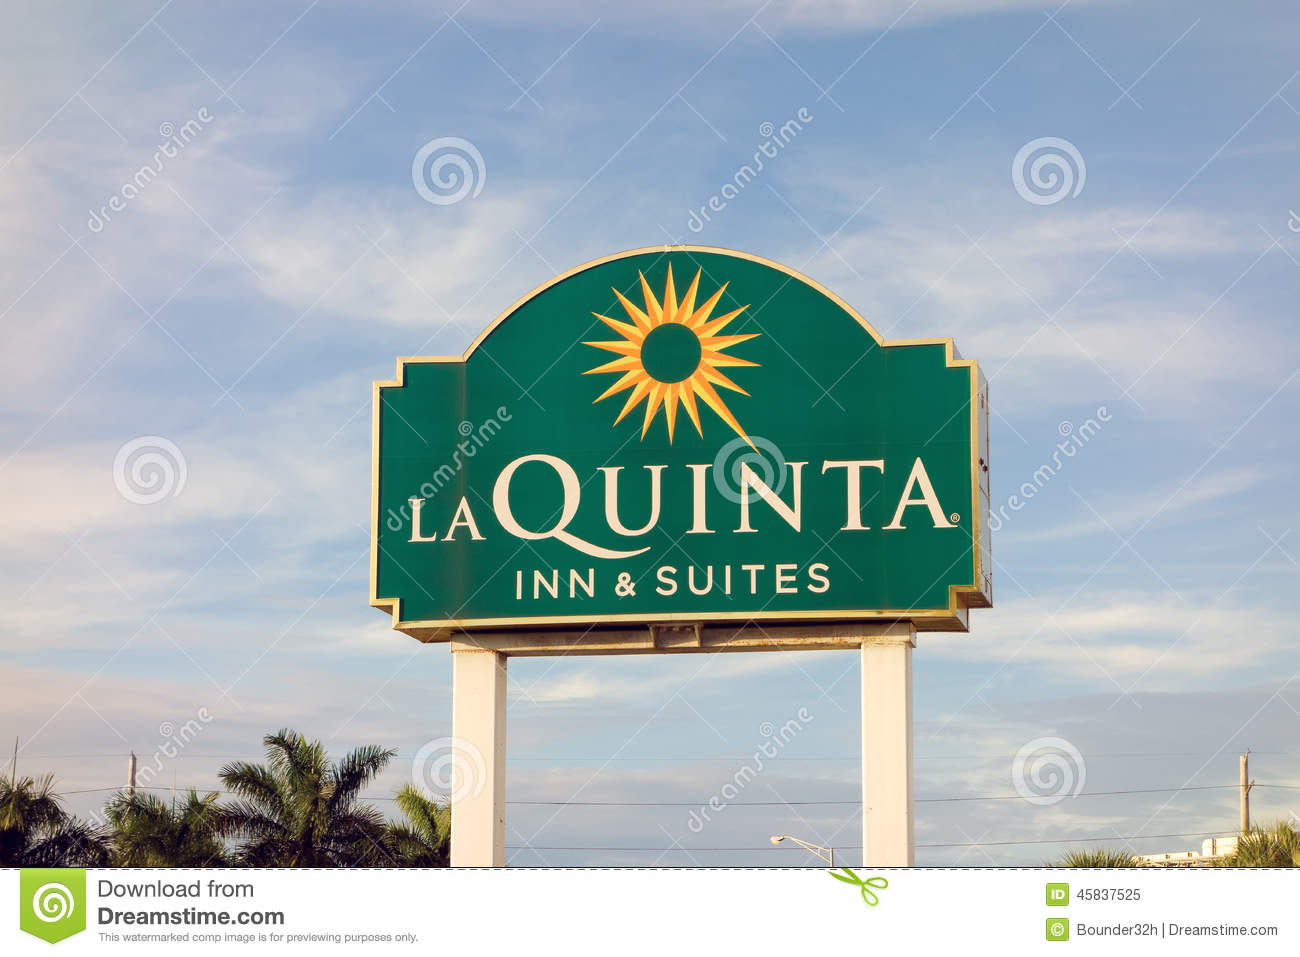 A welcoming hotel sign